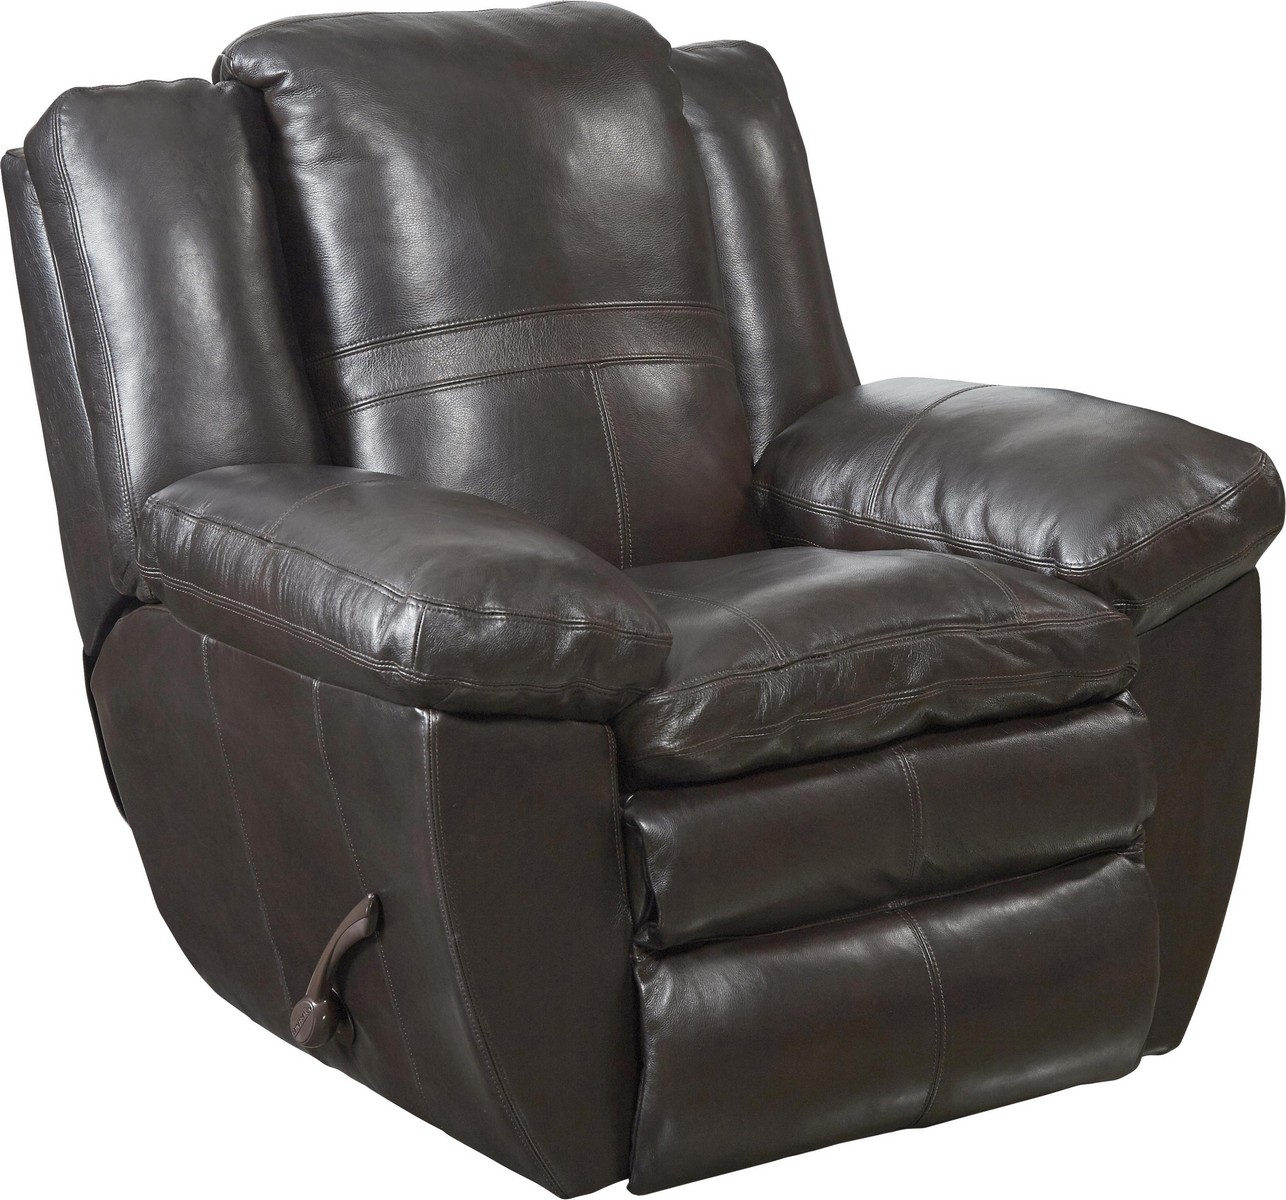 CatNapper Aria Top Grain Italian Leather Lay Flat Recliner - Chocolate